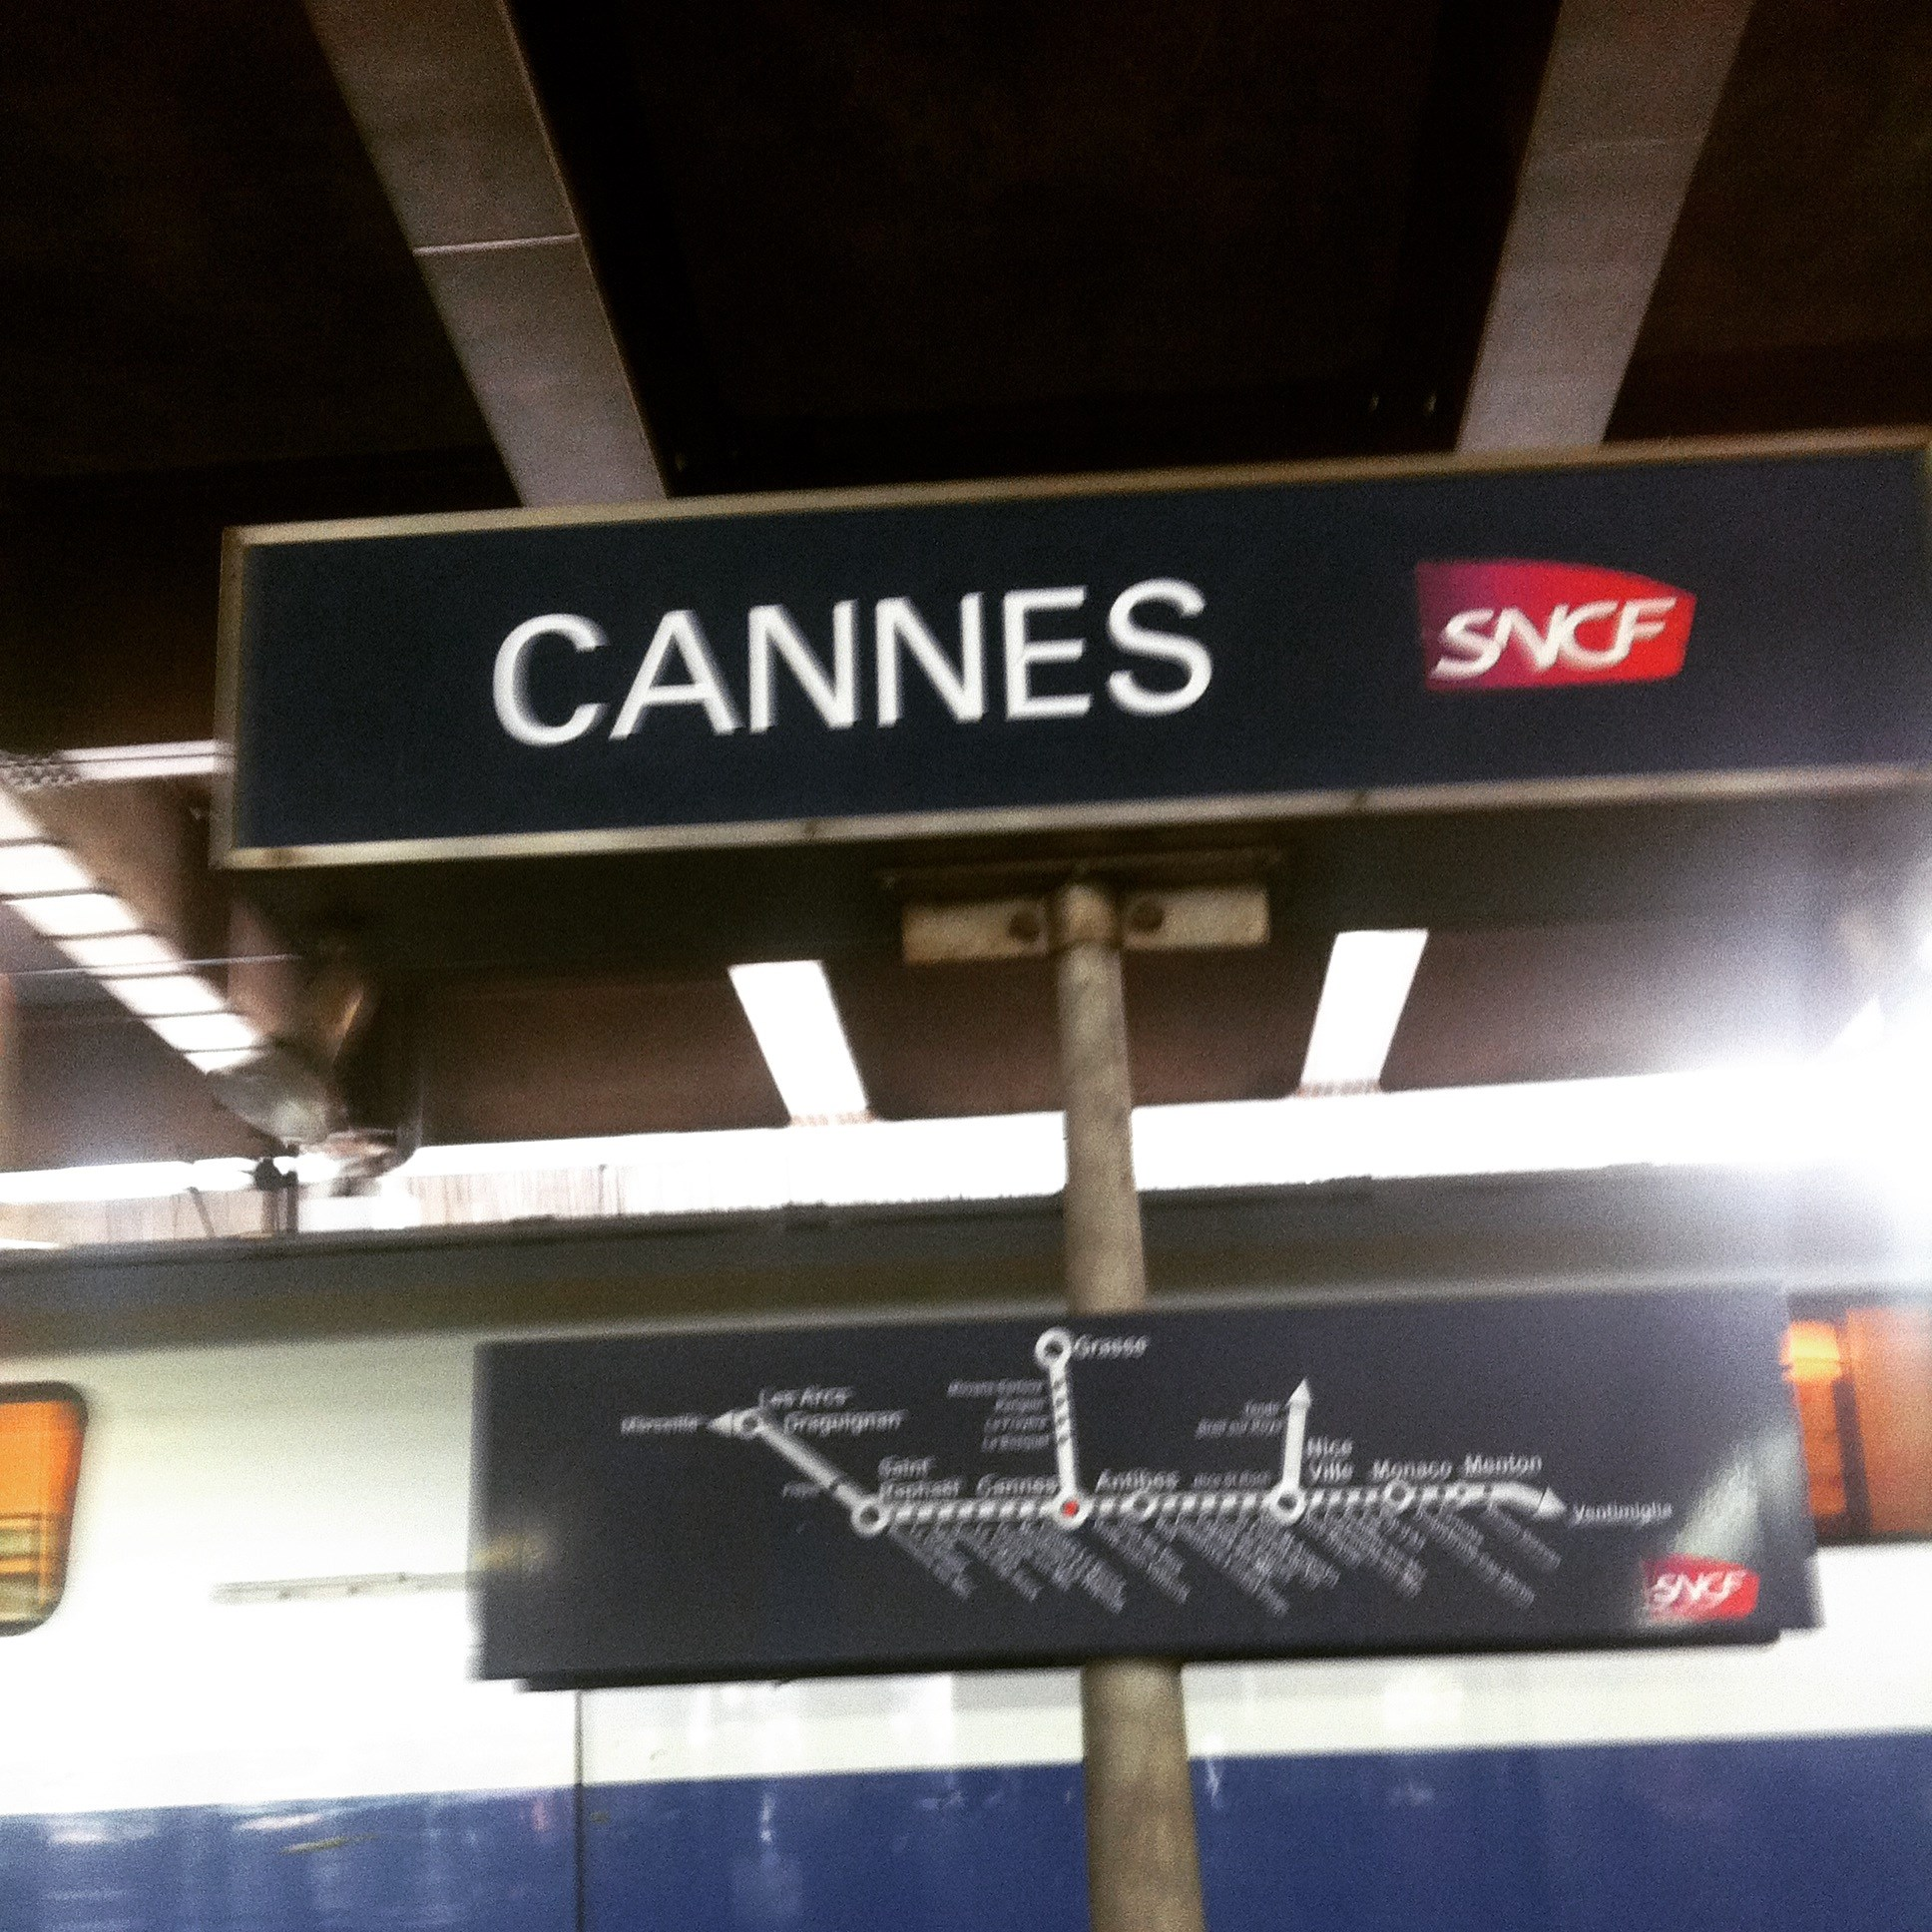 Cannes Train Station.jpg